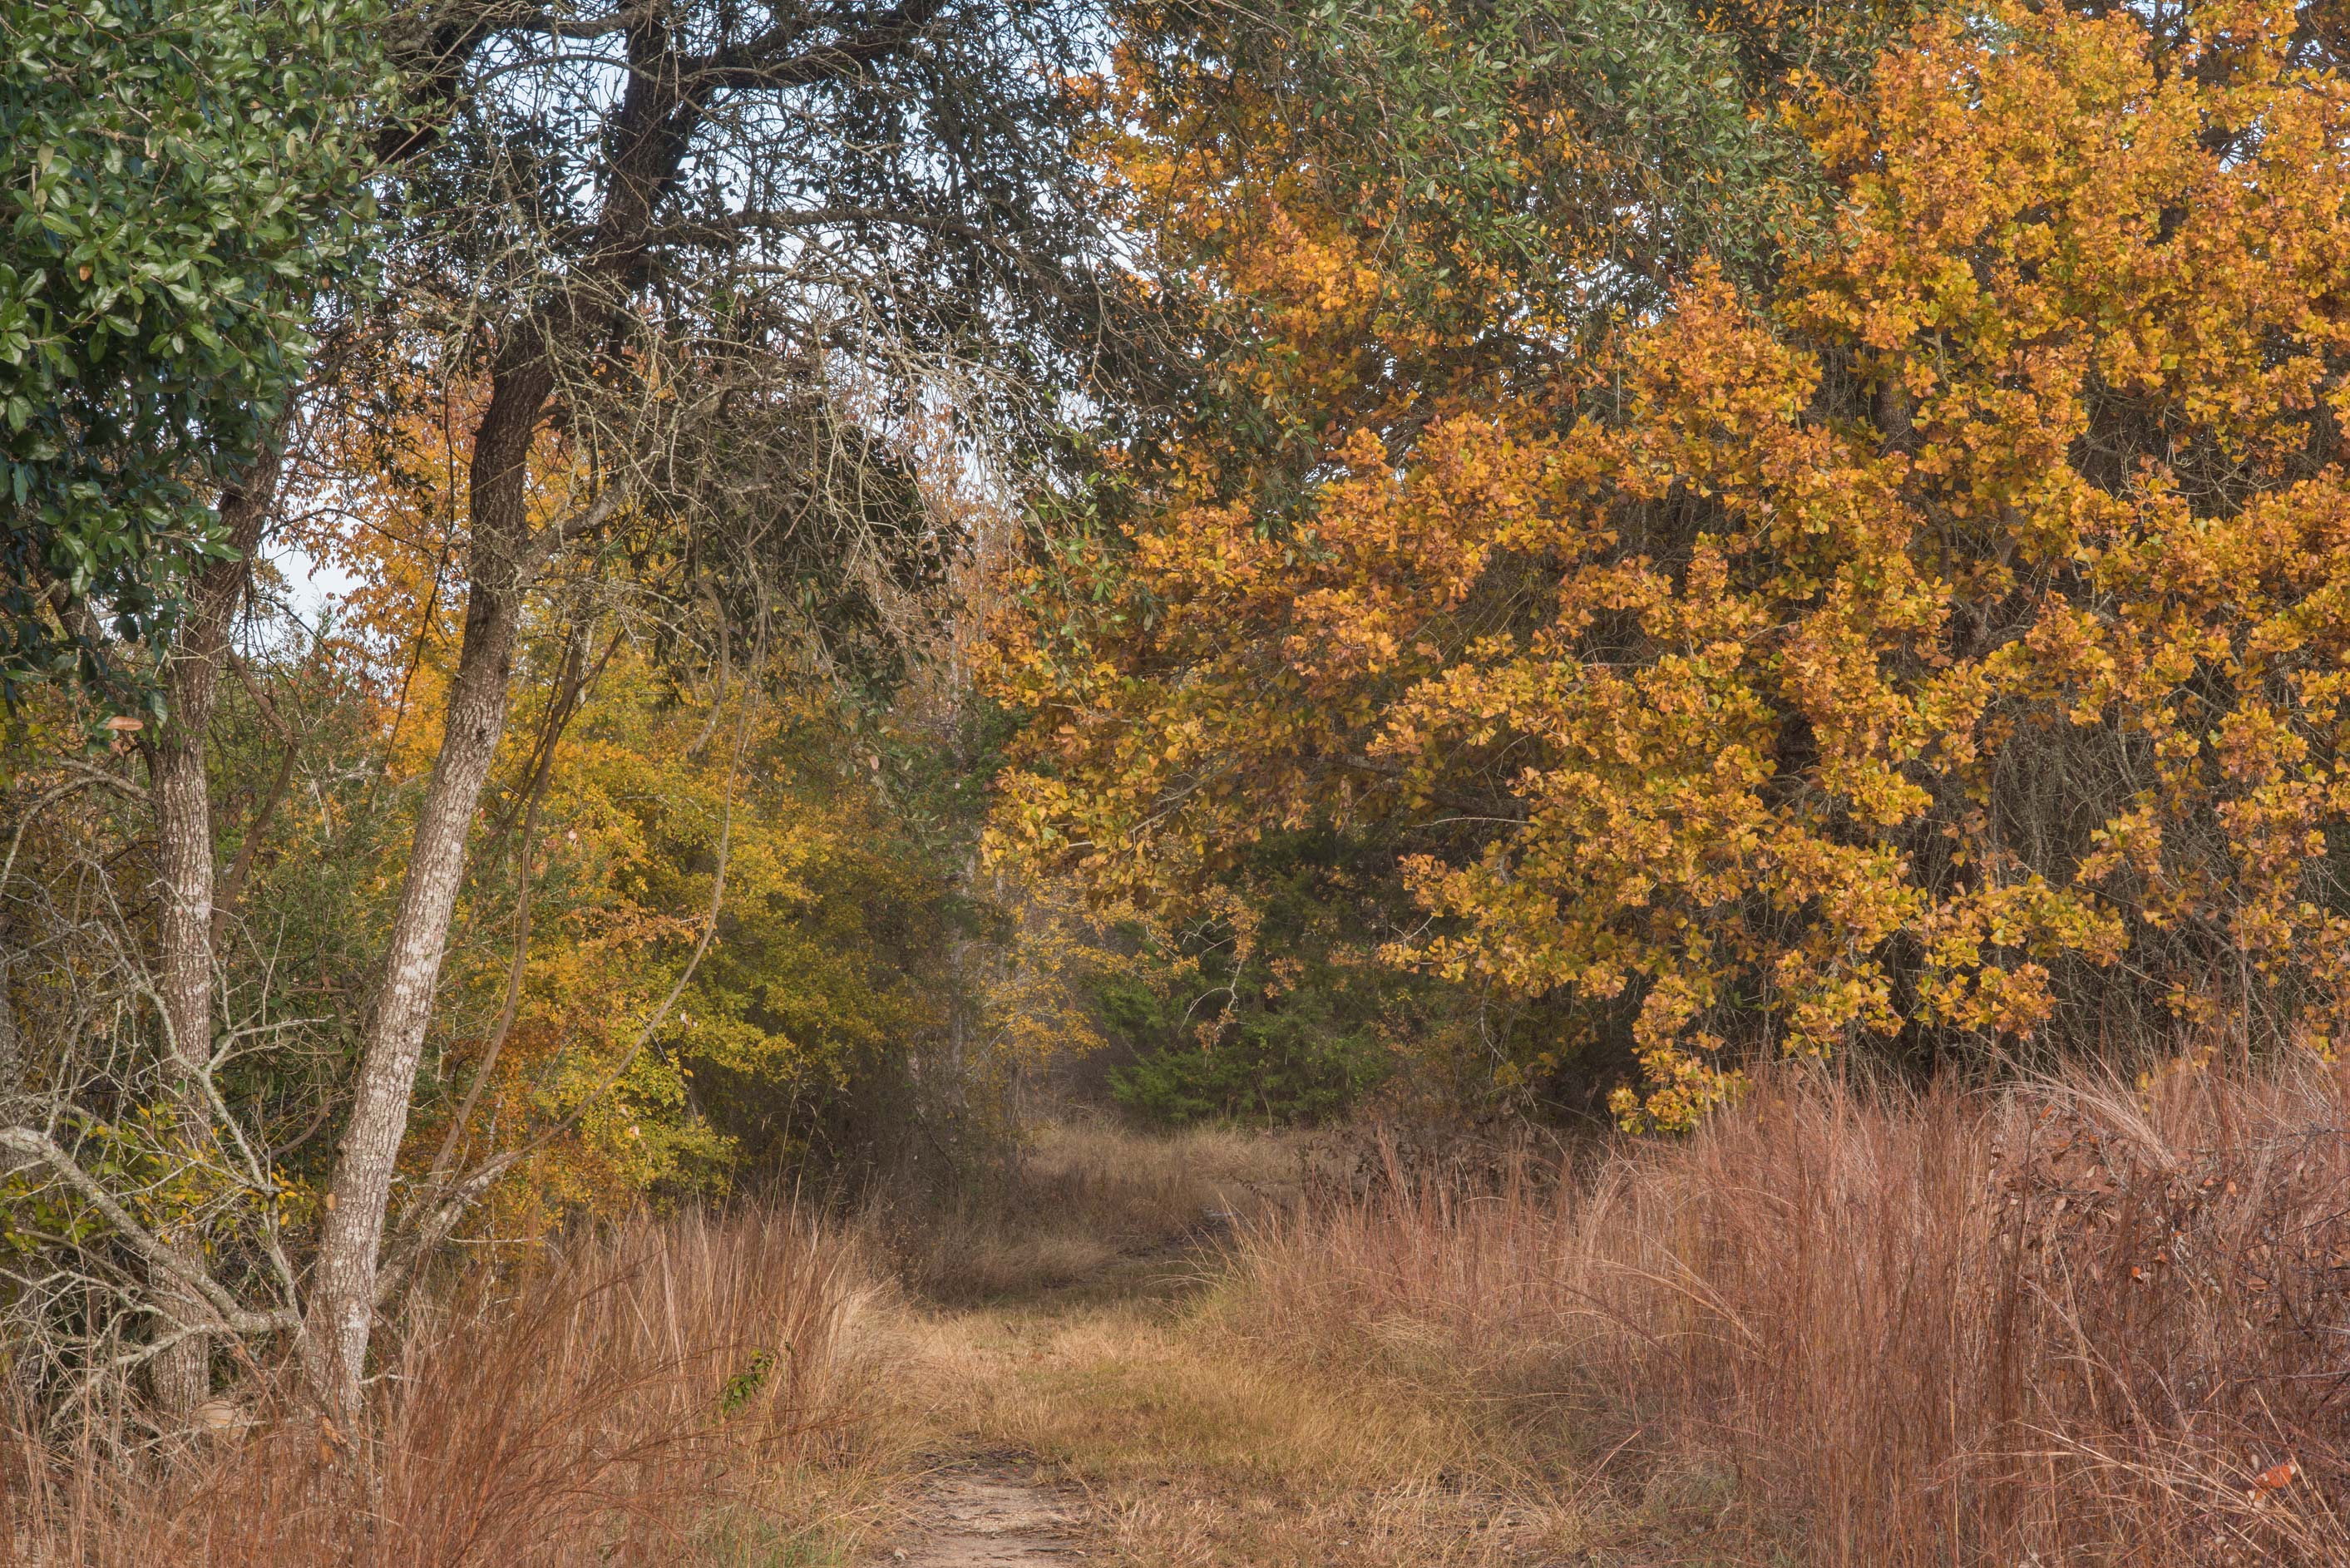 Fall colors of oaks near Birch Creek Unit of Somerville Lake State Park. Texas